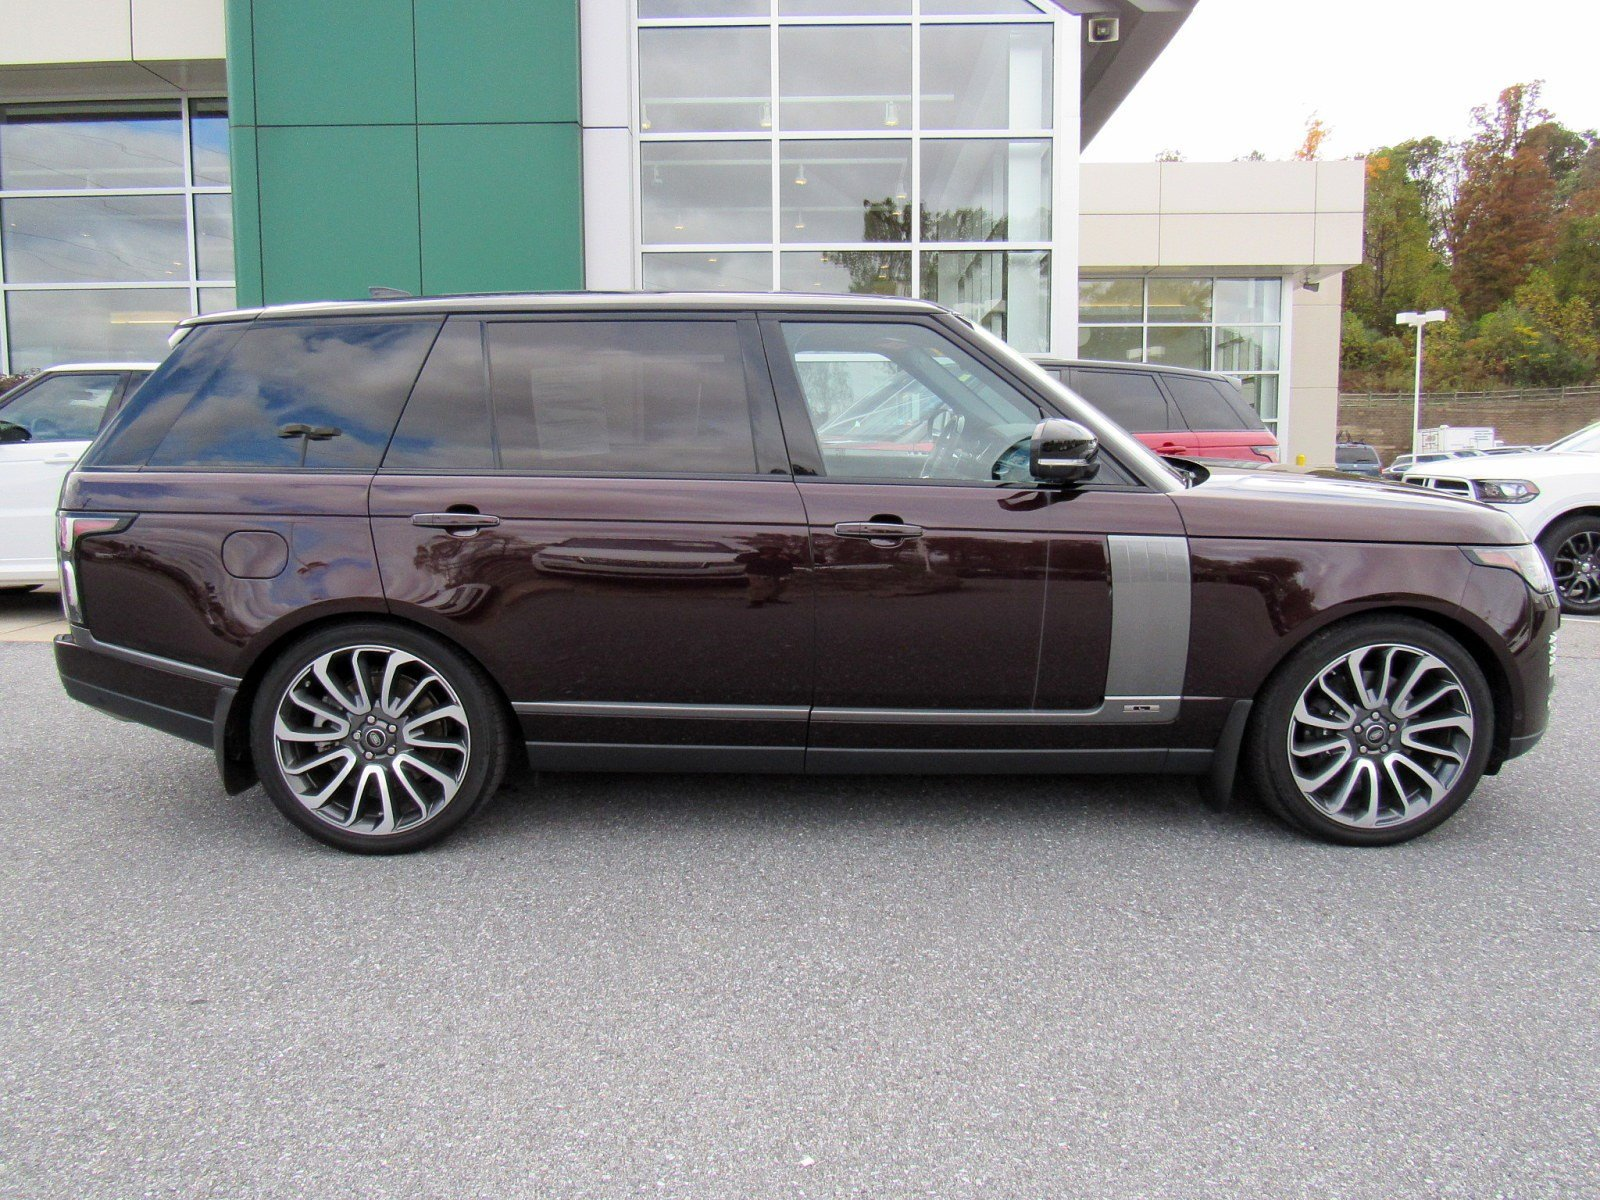 Certified Pre-Owned 2018 Land Rover Range Rover Autobiography